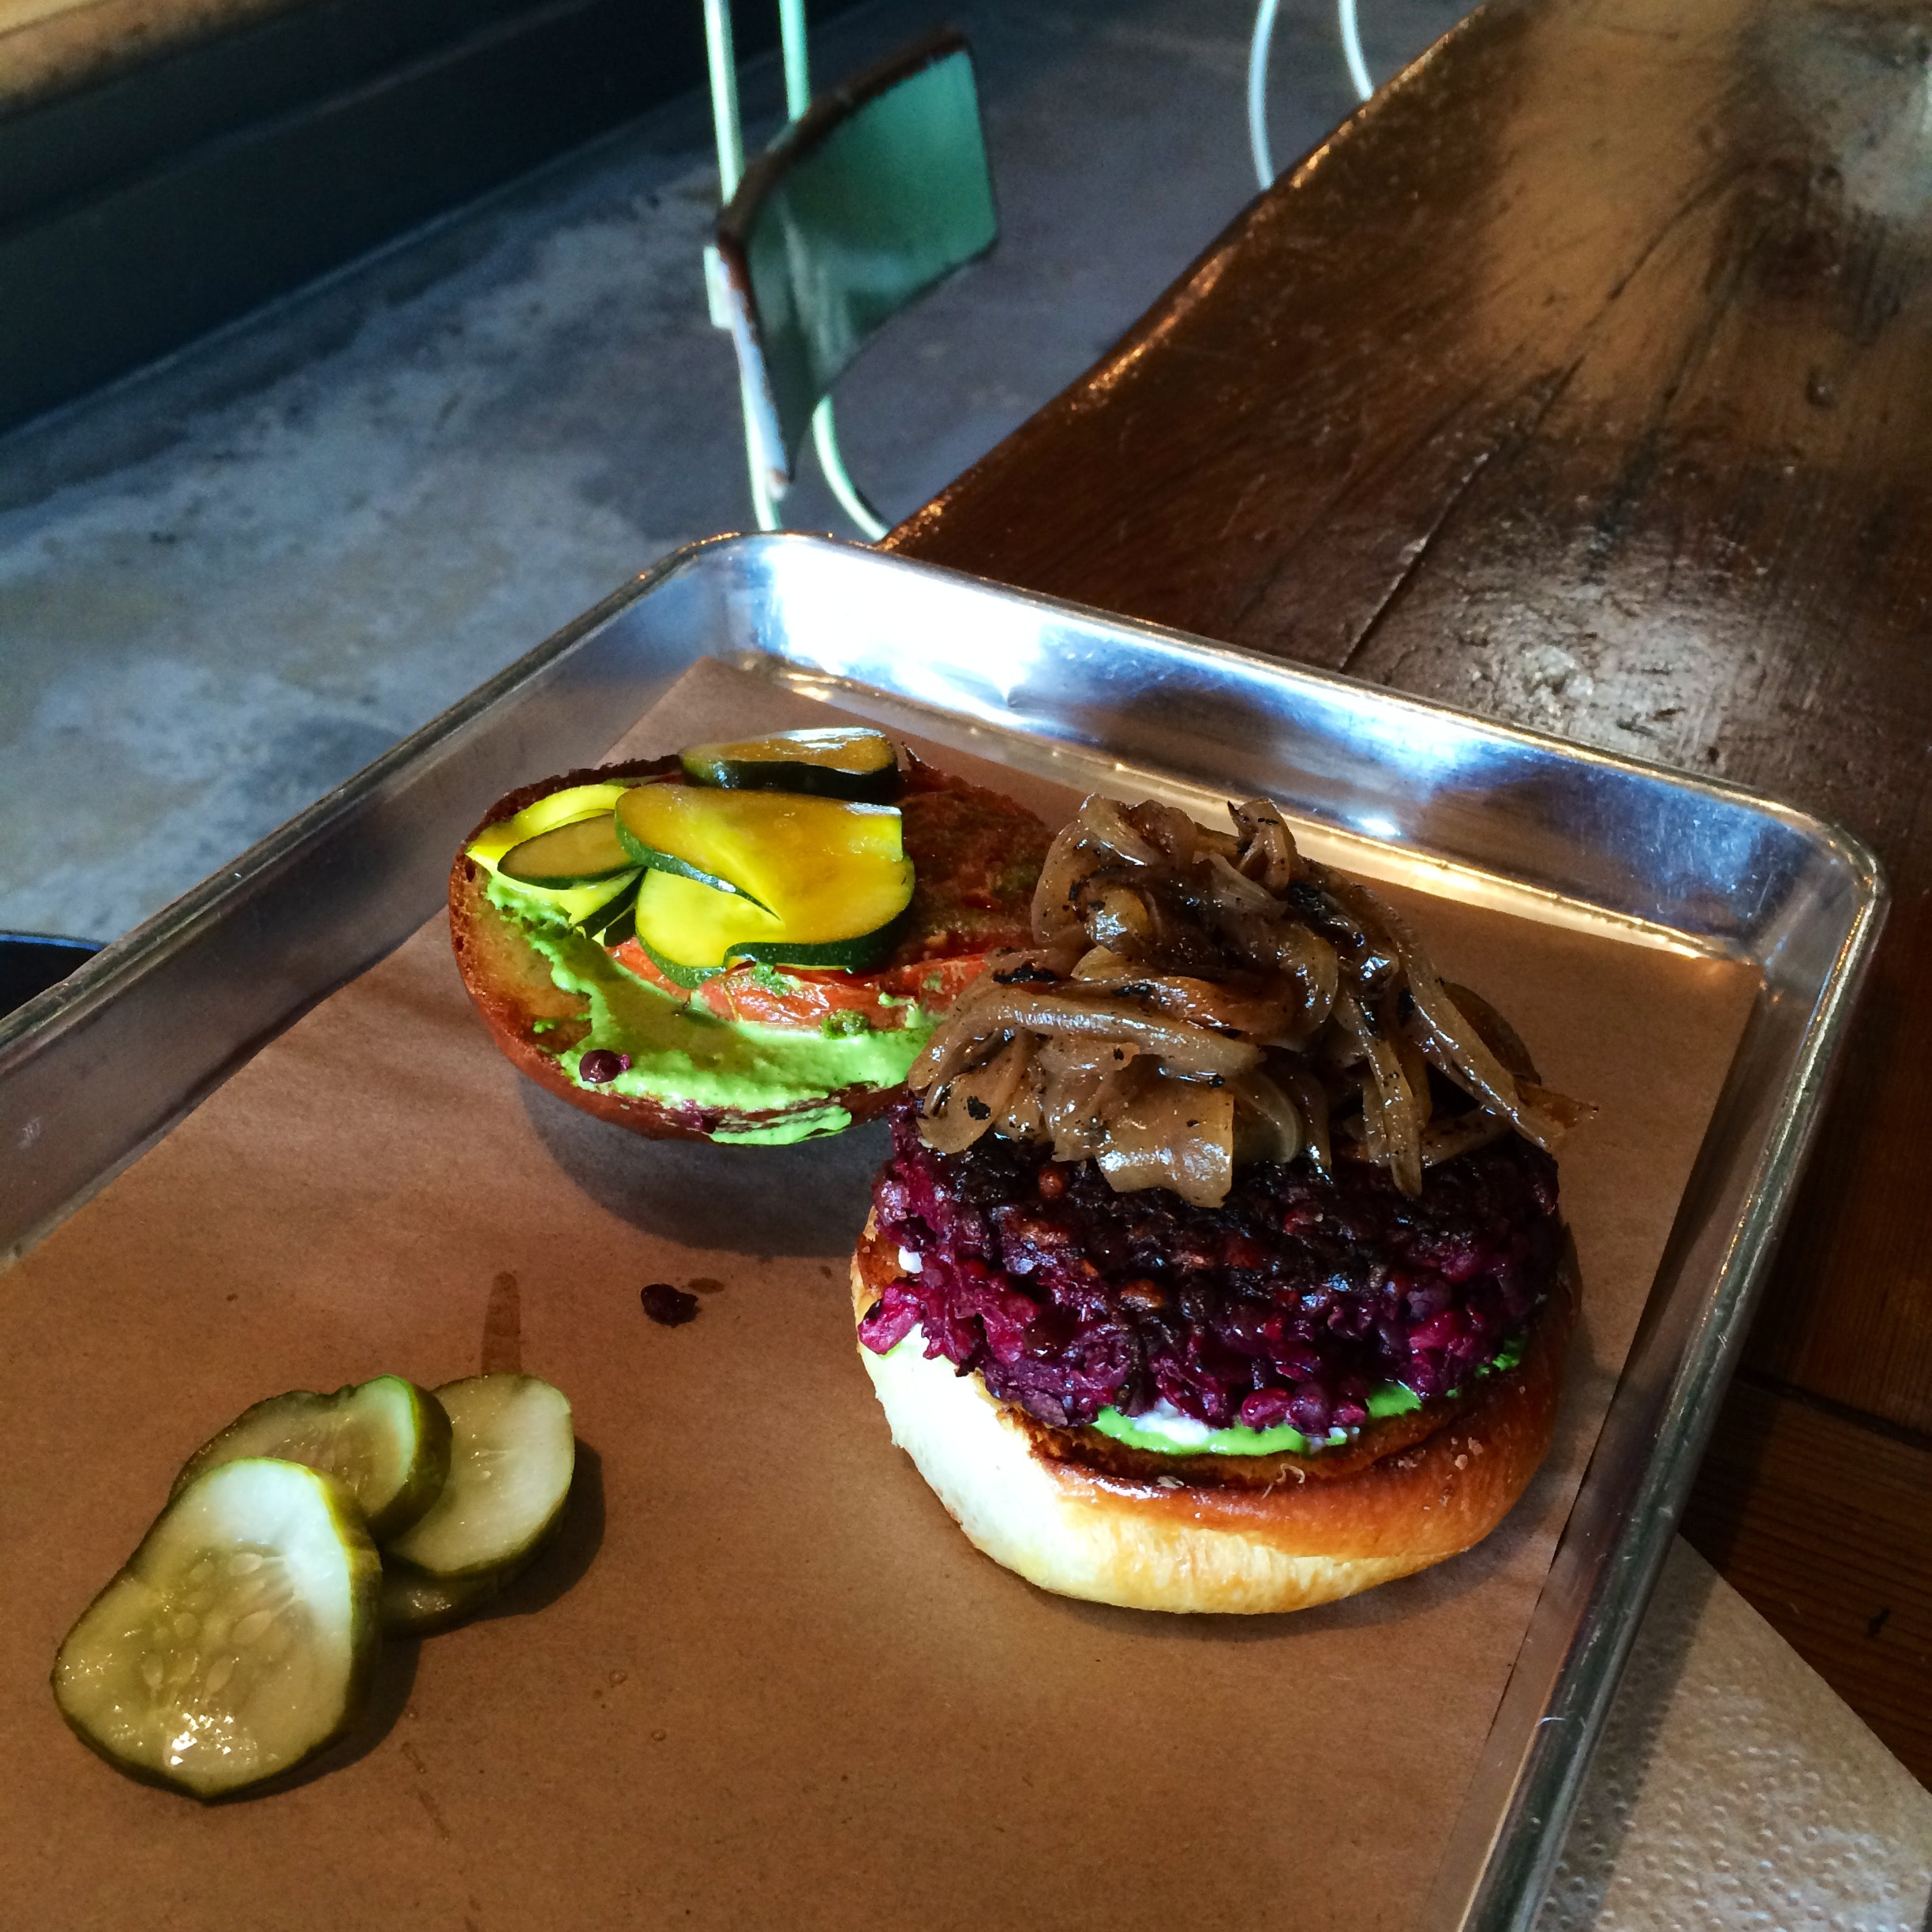 Veggie Burger made with beets from Butcher & Bee